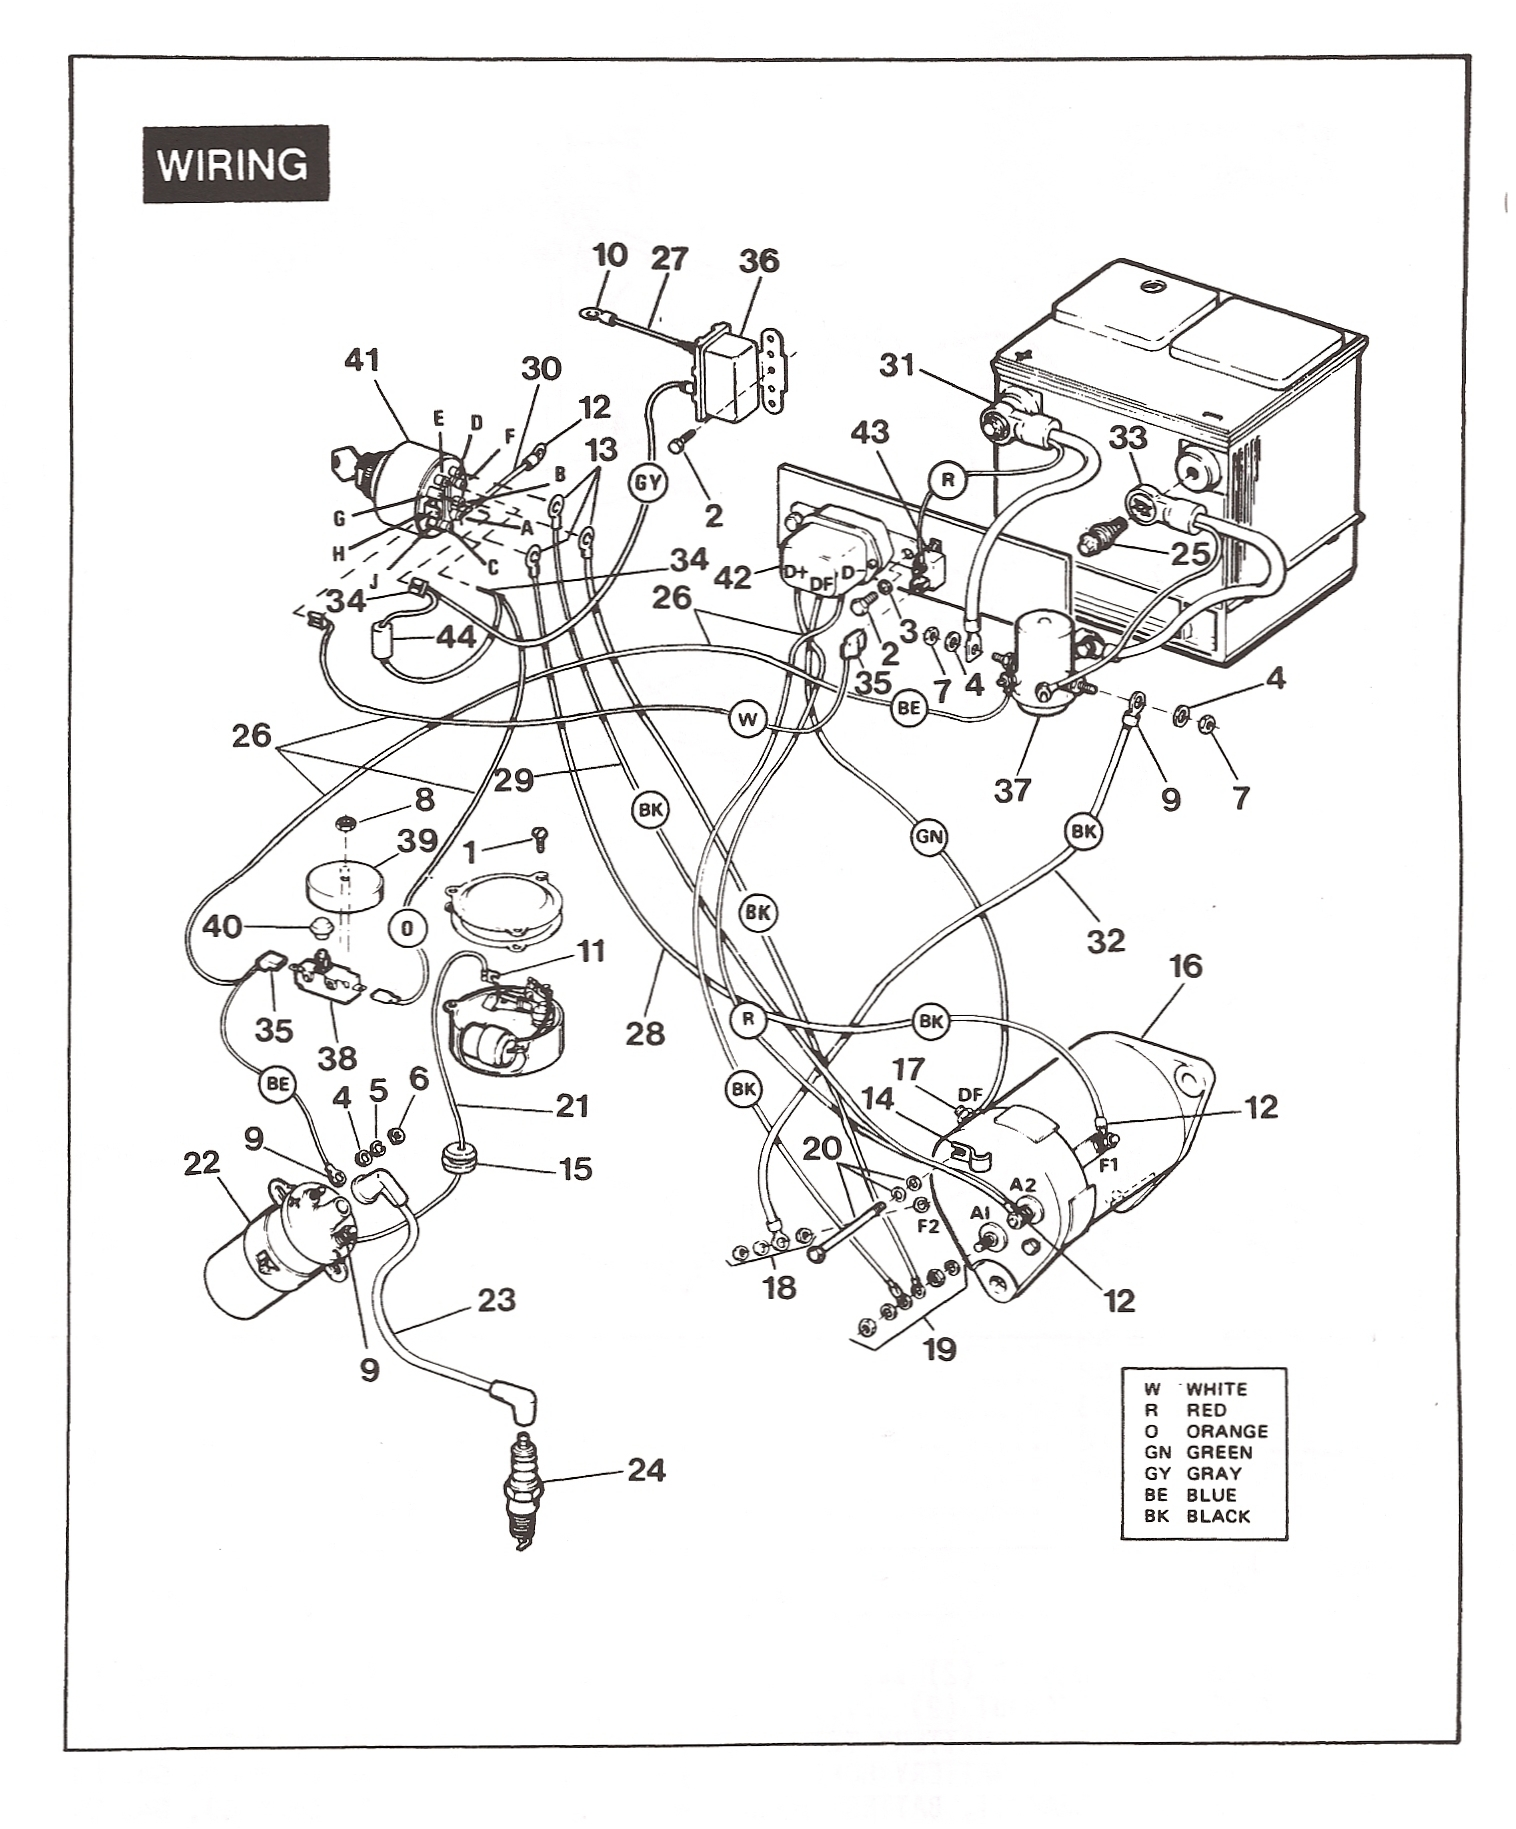 82_86_Columbia_Harley?resize=665%2C802 wiring diagram for columbia par car 48 volt readingrat net columbia wiring diagram at edmiracle.co